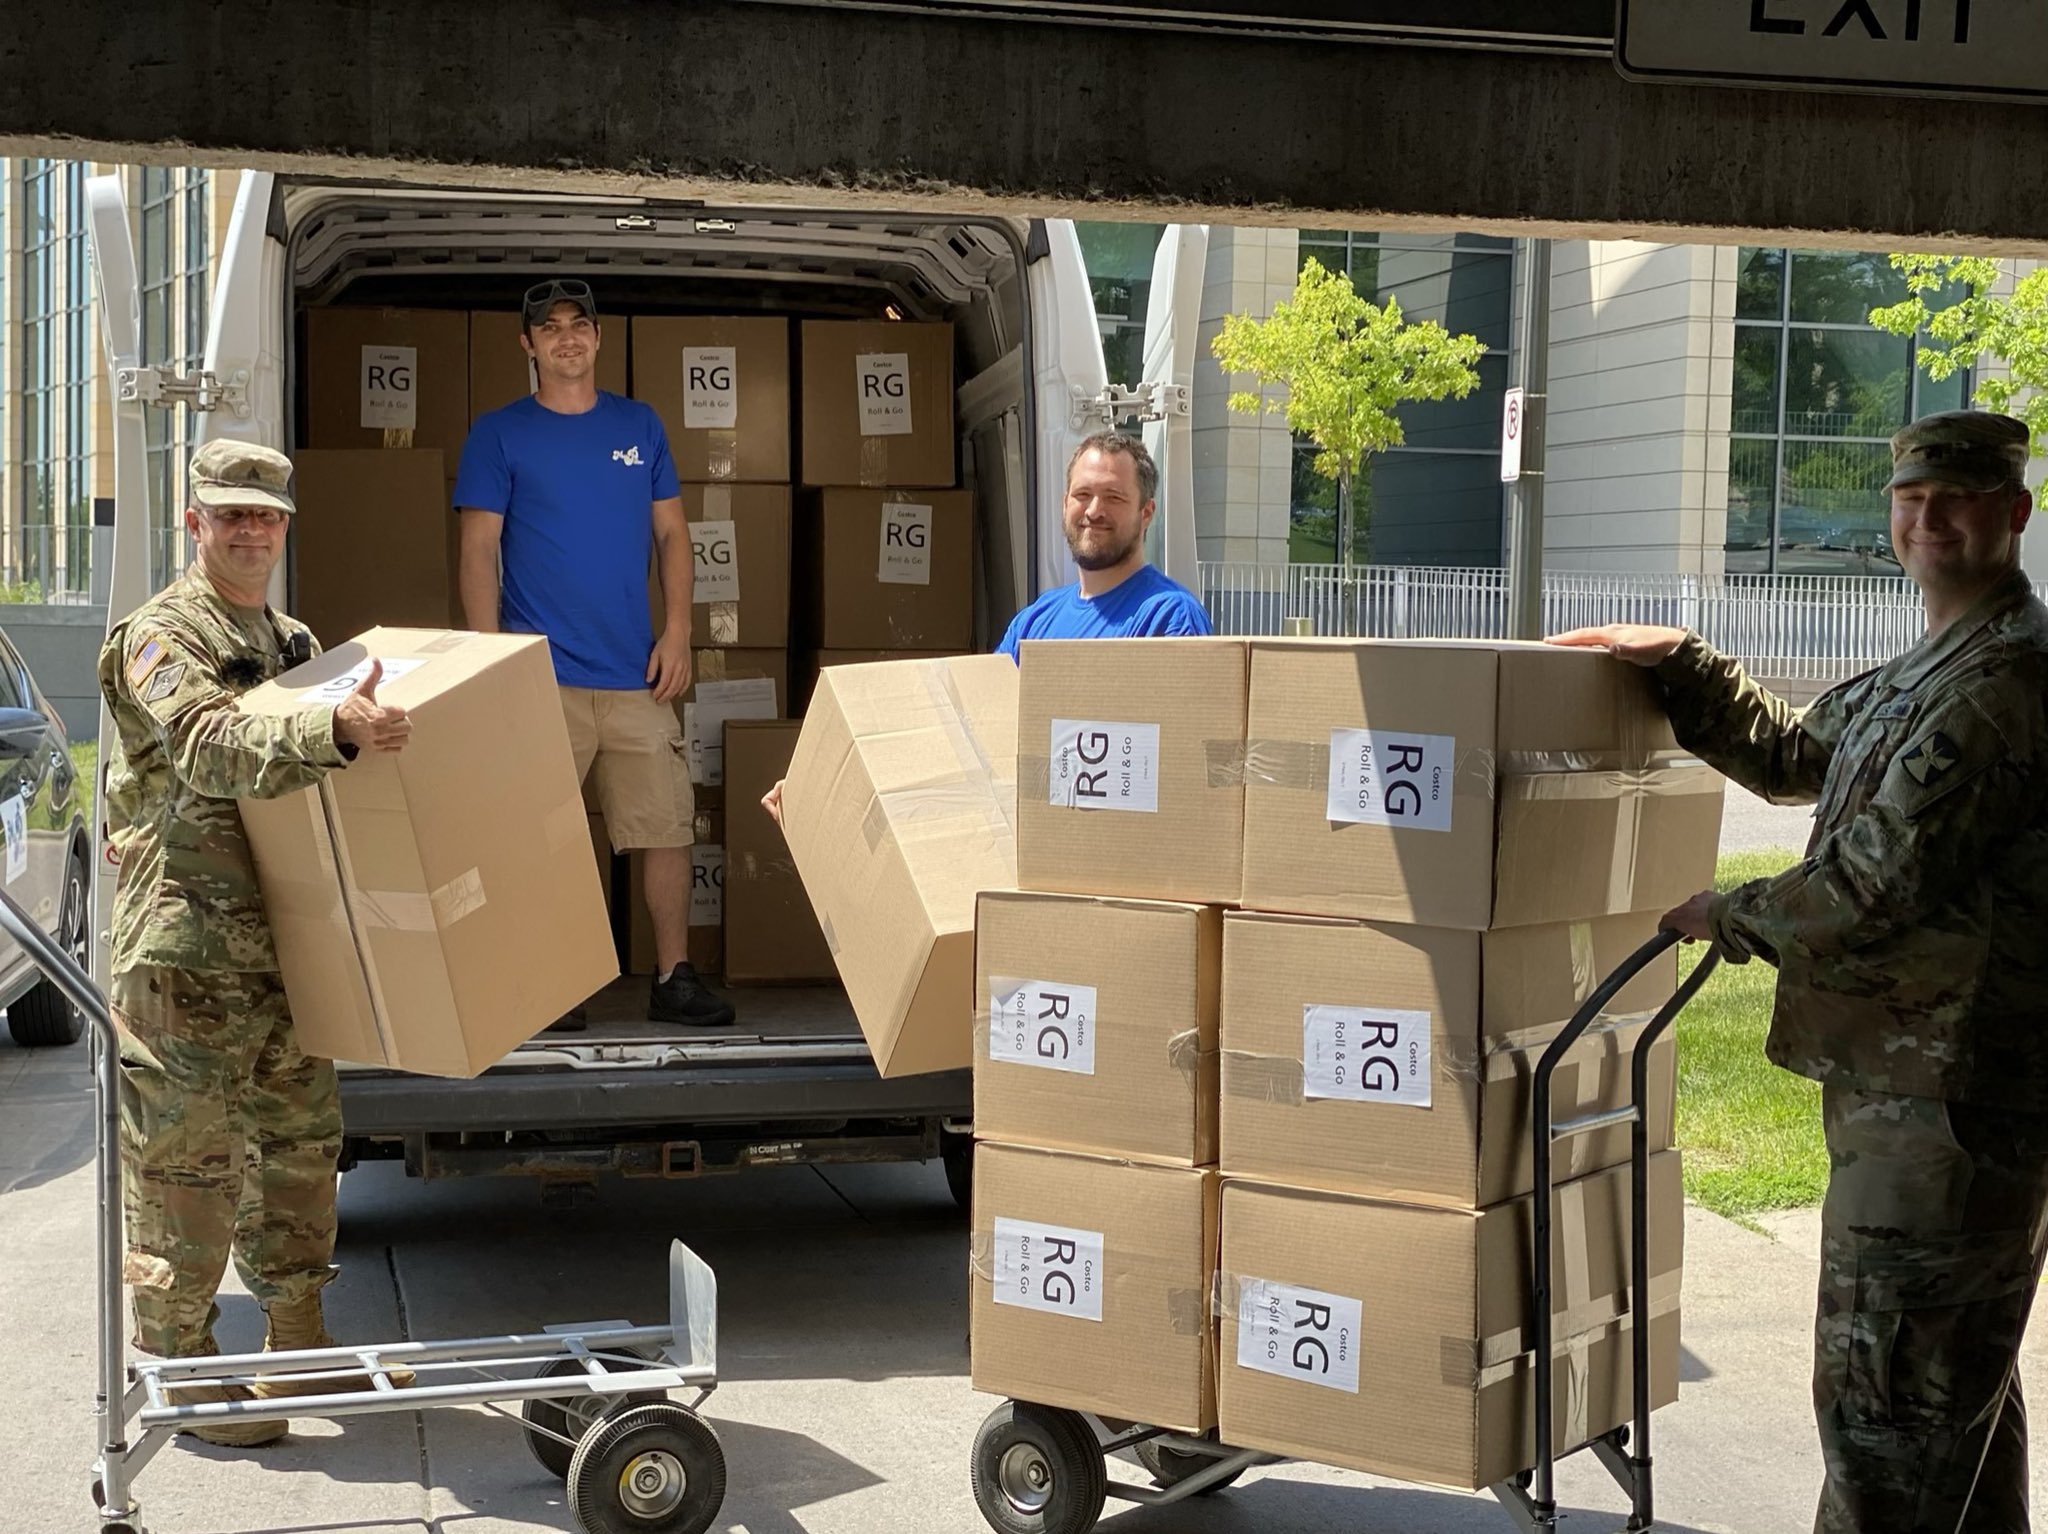 Mike Lindell Donates MyPillows to National Guard Members Sleeping on the Floor in Twin Cities